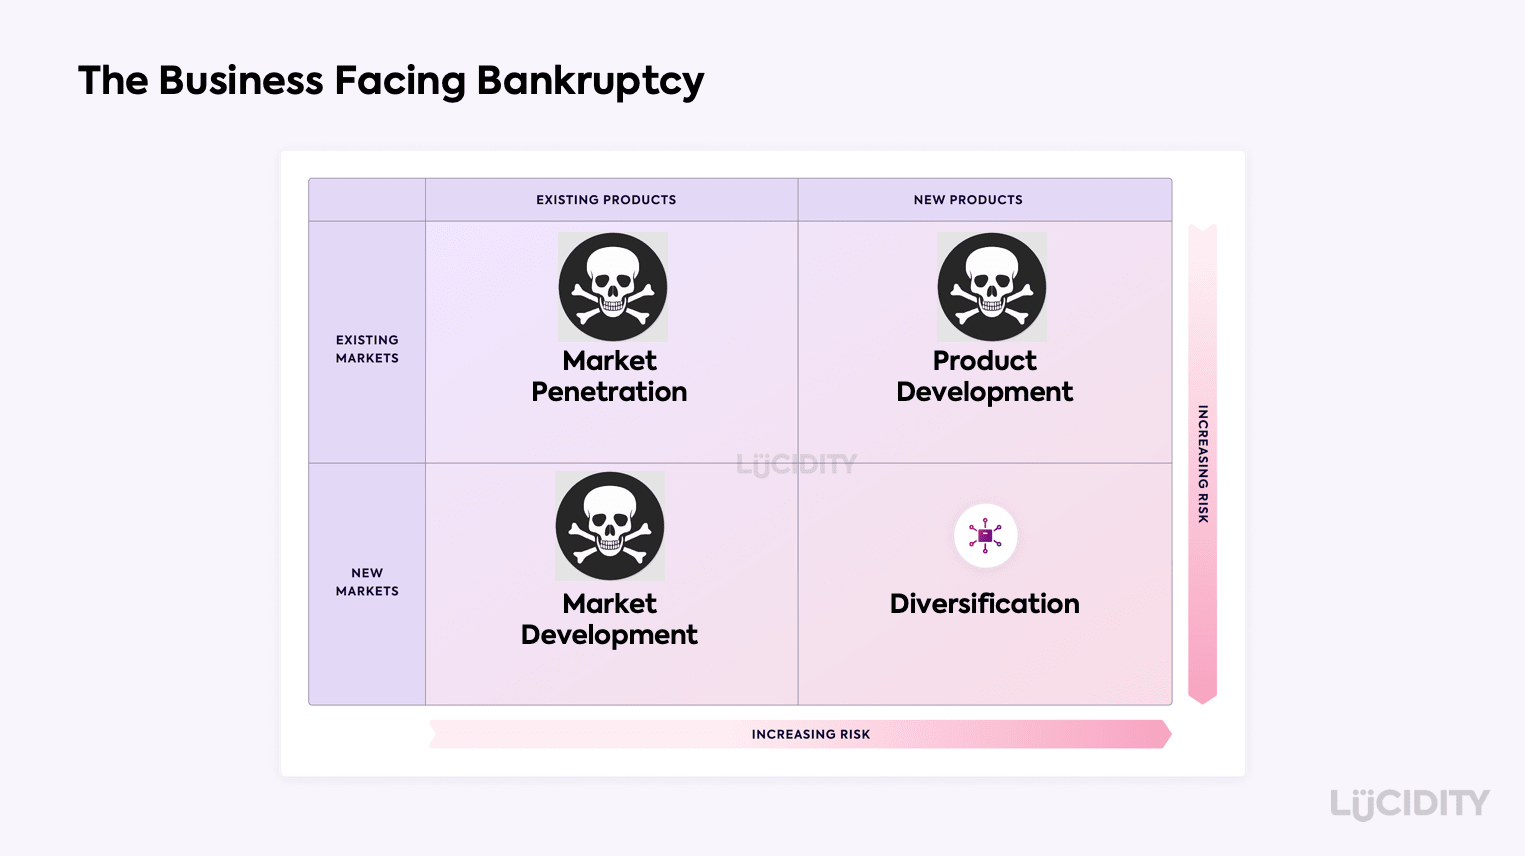 An Ansoff Matrix for a business facing bankruptcy that needs to turnaround